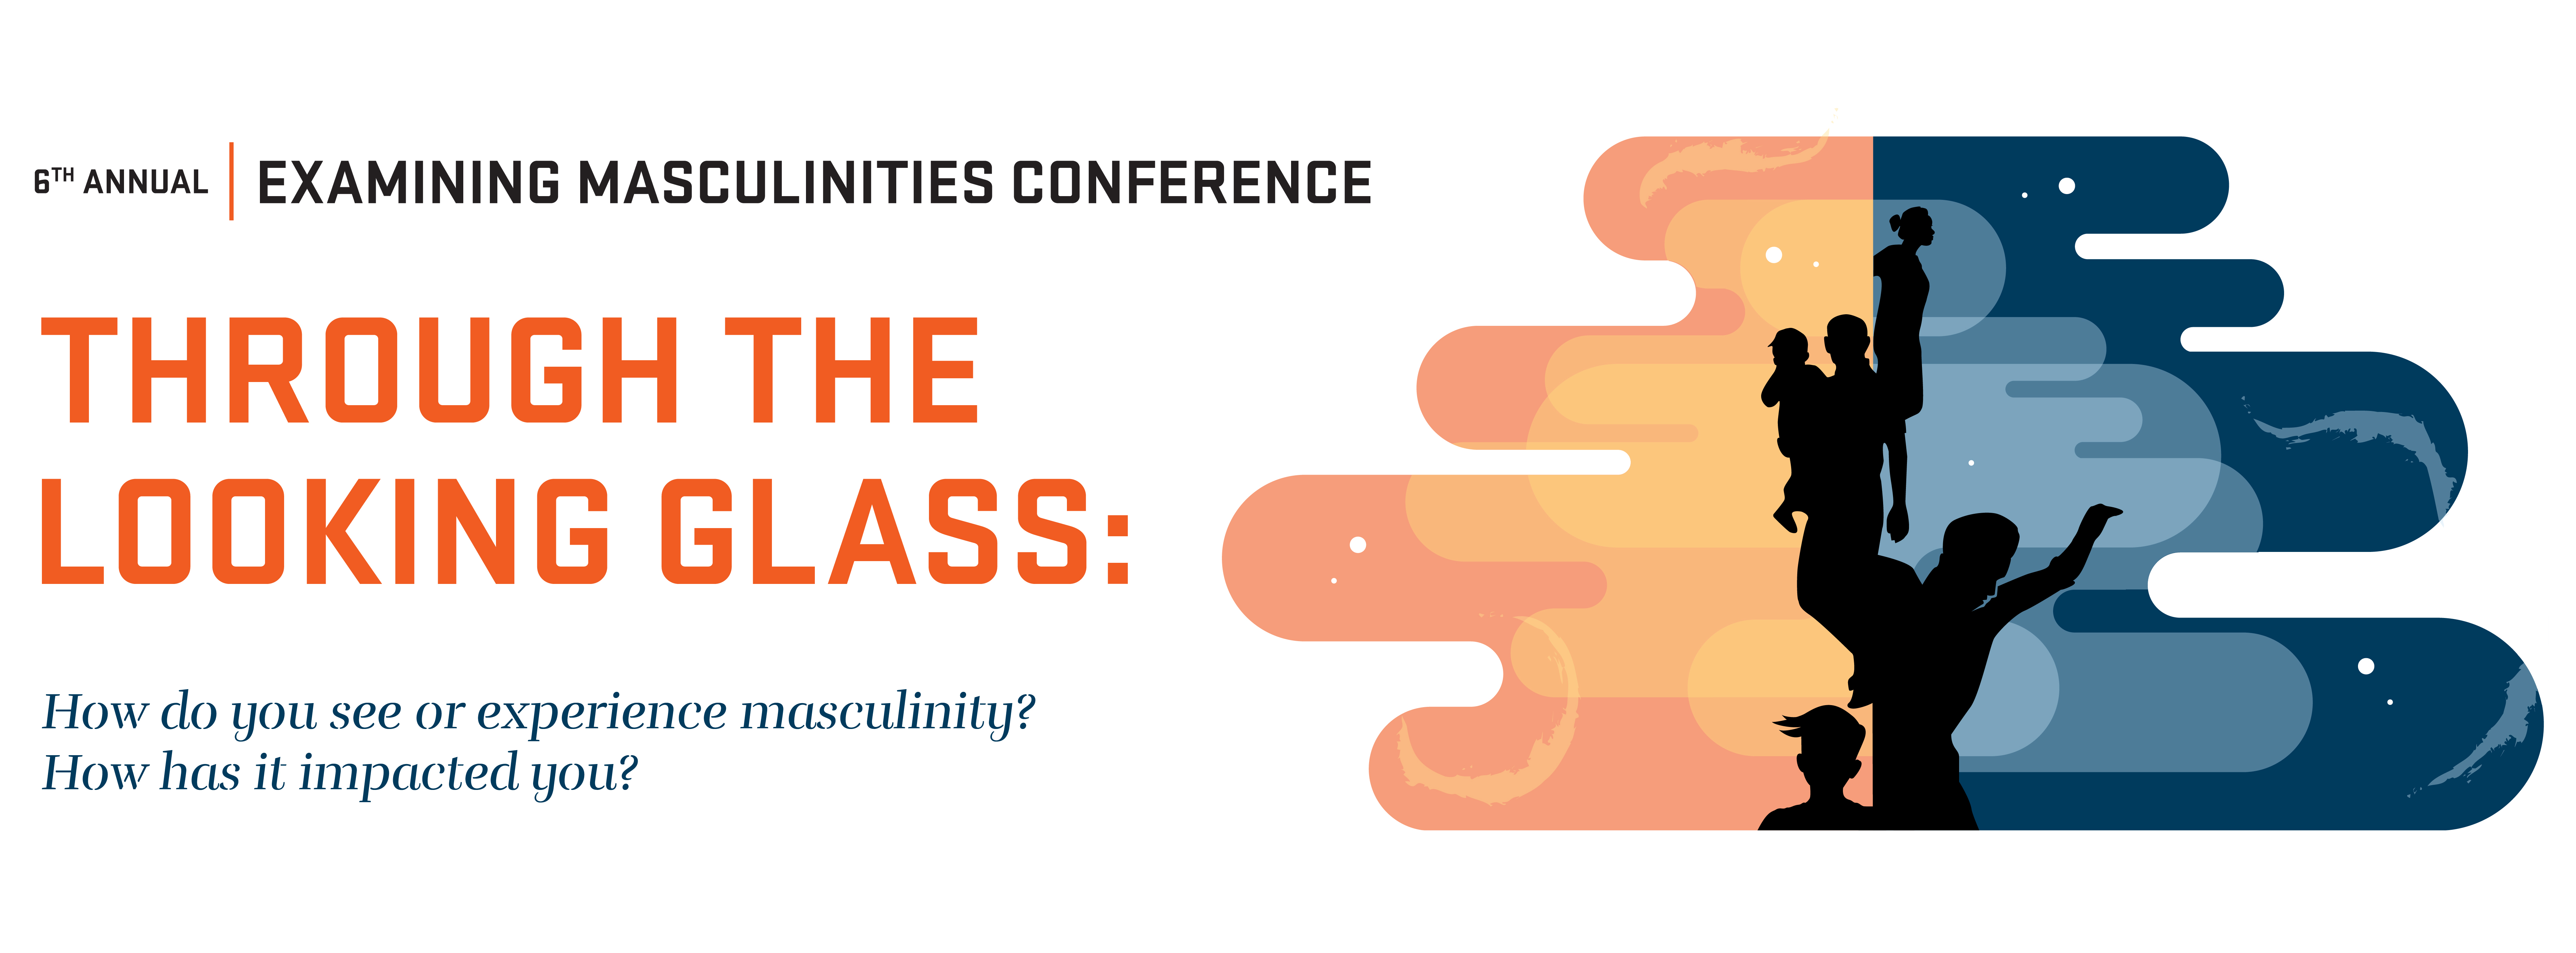 6th Annual Examining Masculinities Conference: Through the Looking Glass